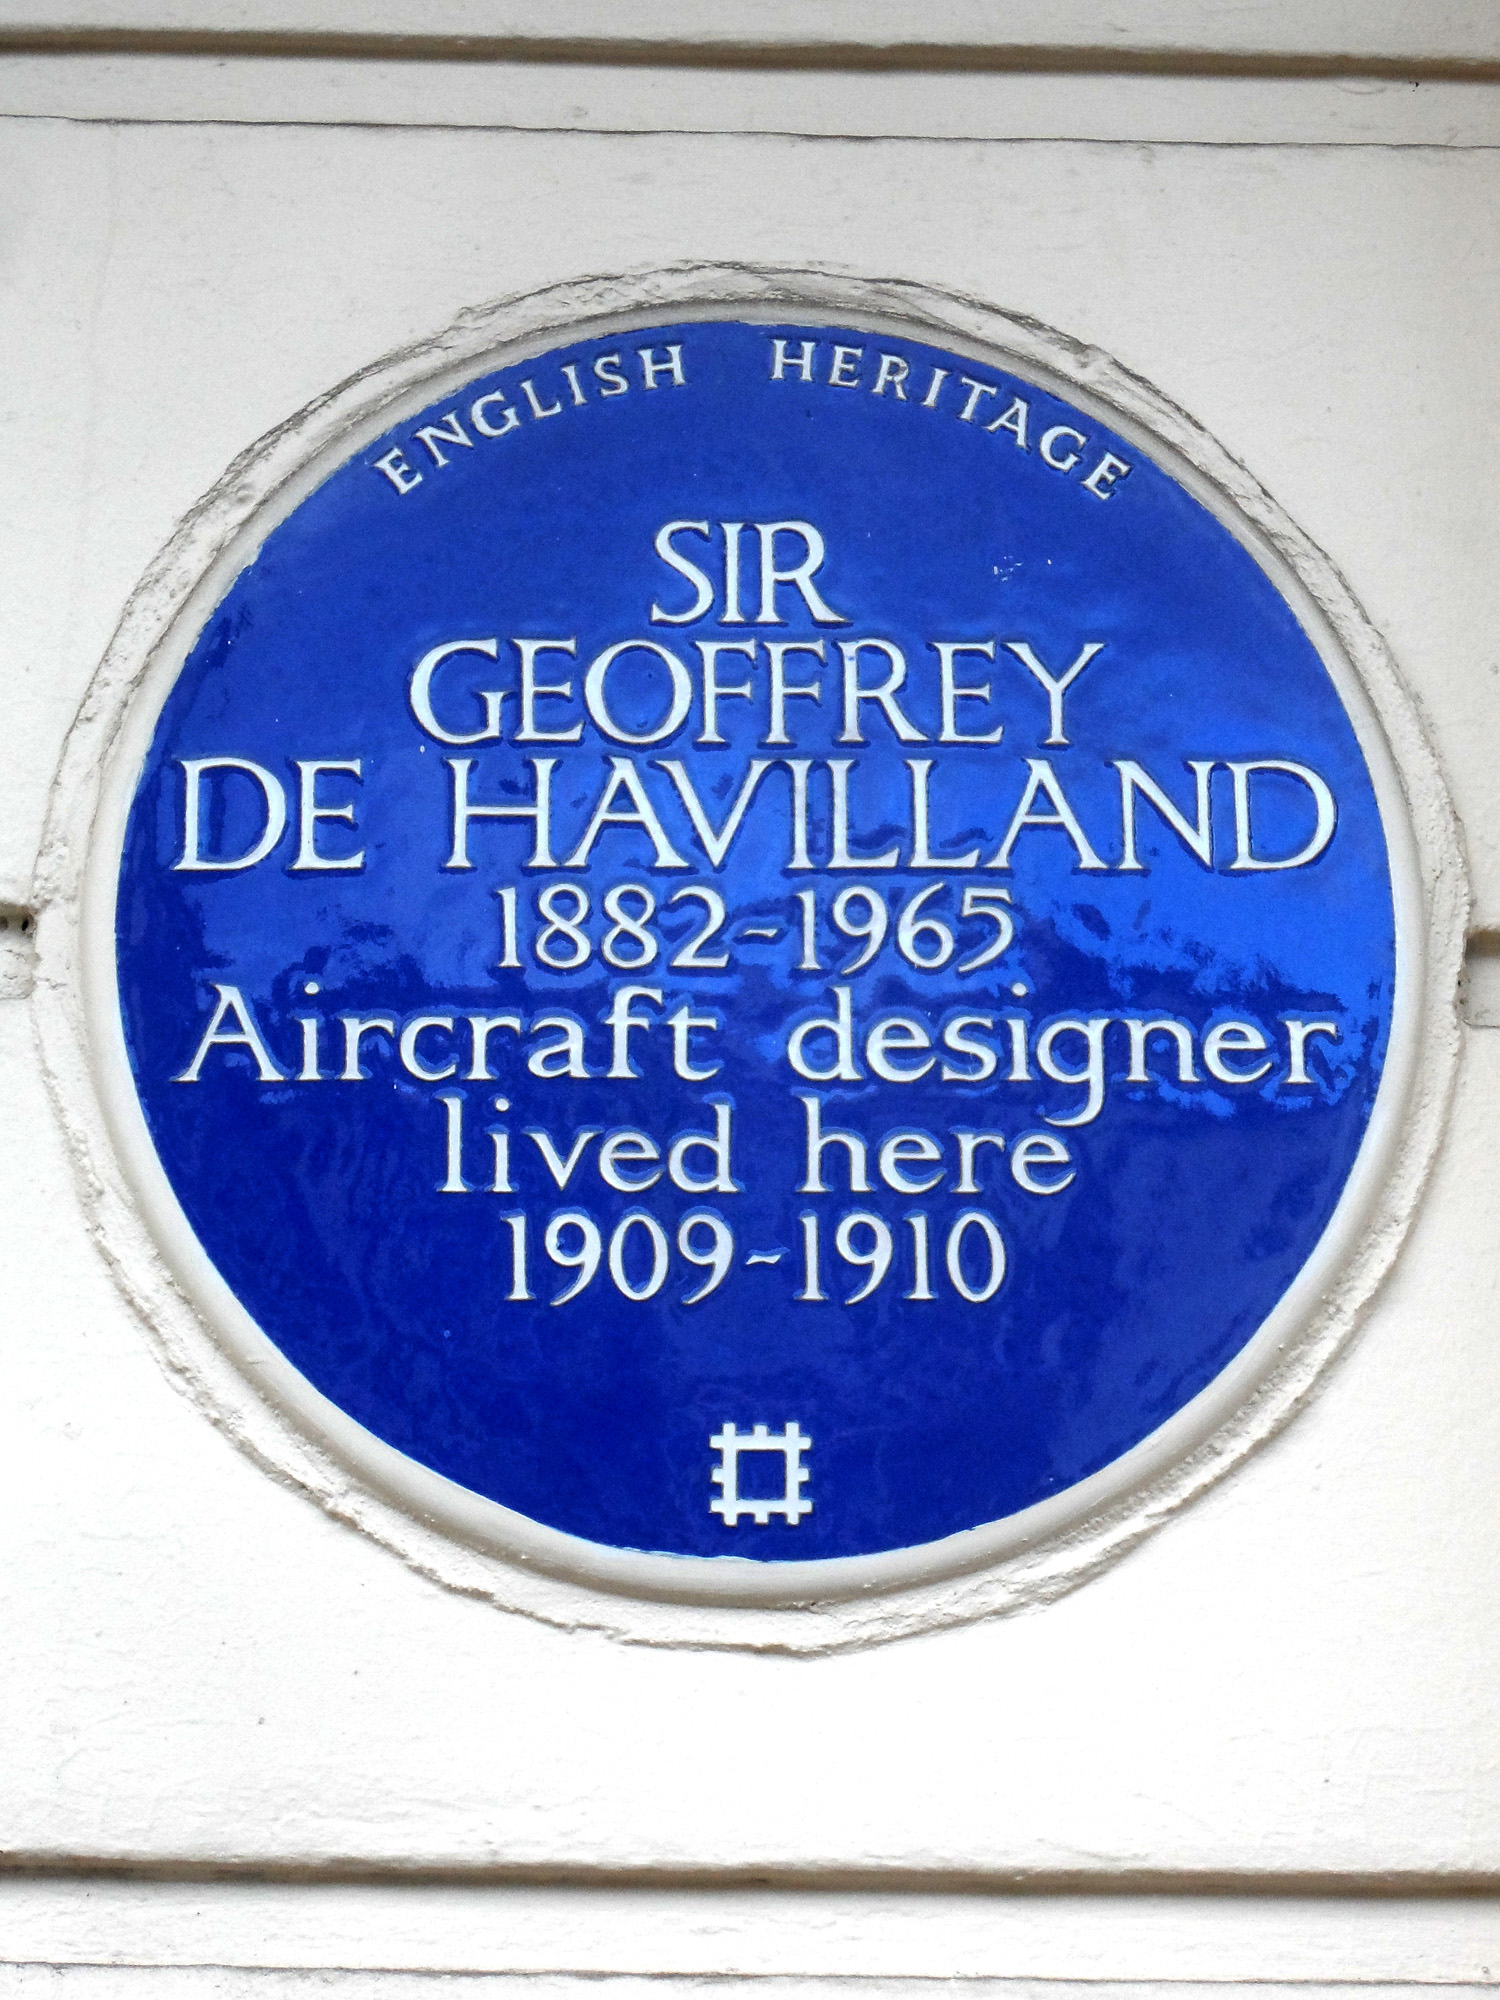 SIR_GEOFFREY_DE_HAVILLAND_1882-1965_Aircraft_designer_lived_here_1909-1910